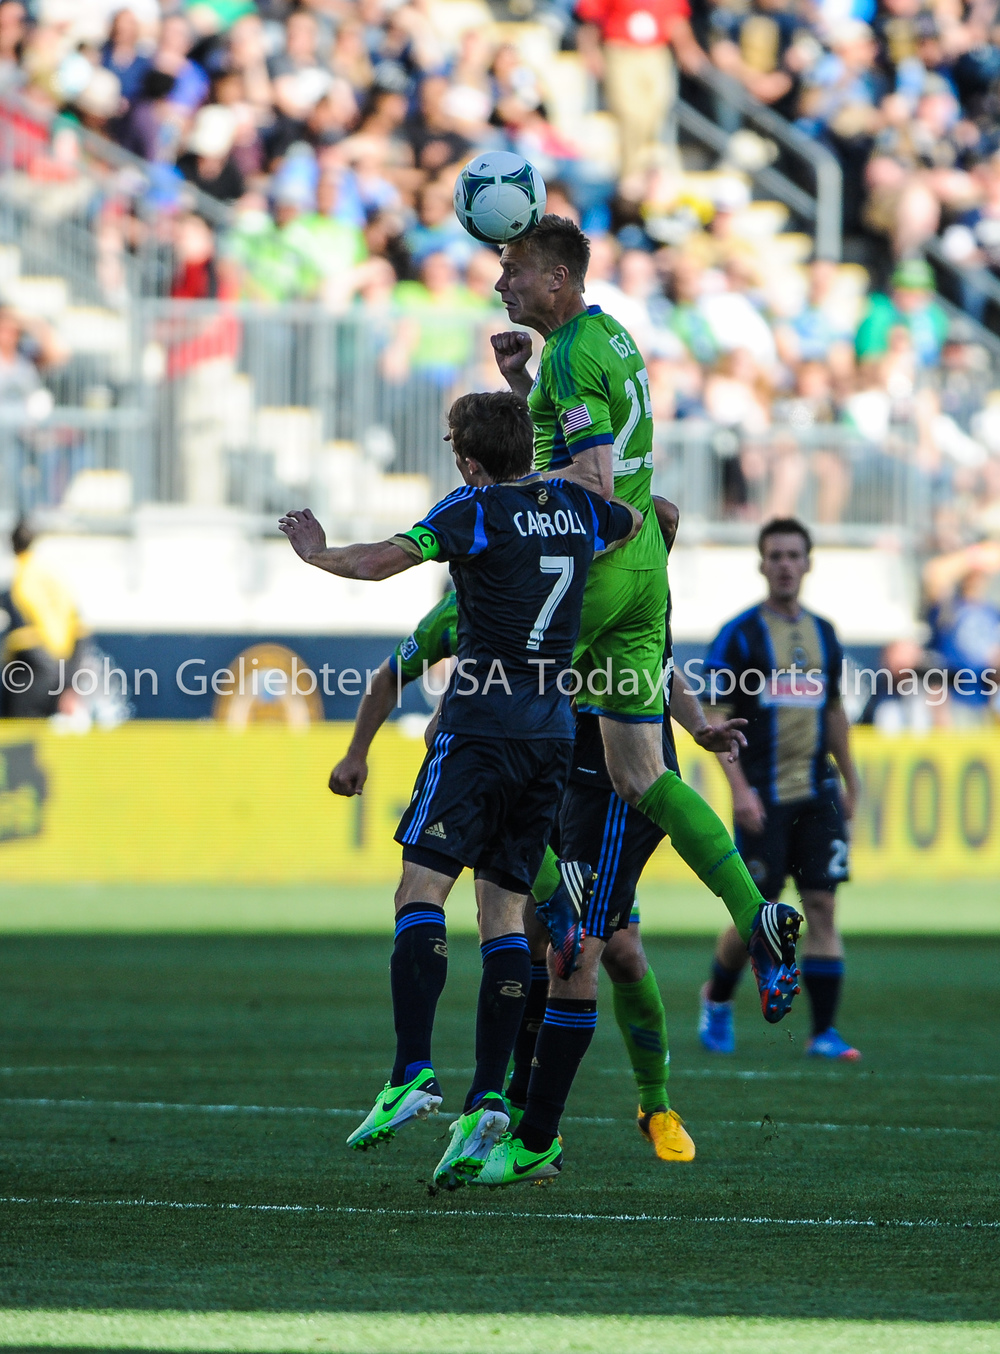 Sounders_Union_May_4_2013_JAG1356.jpg